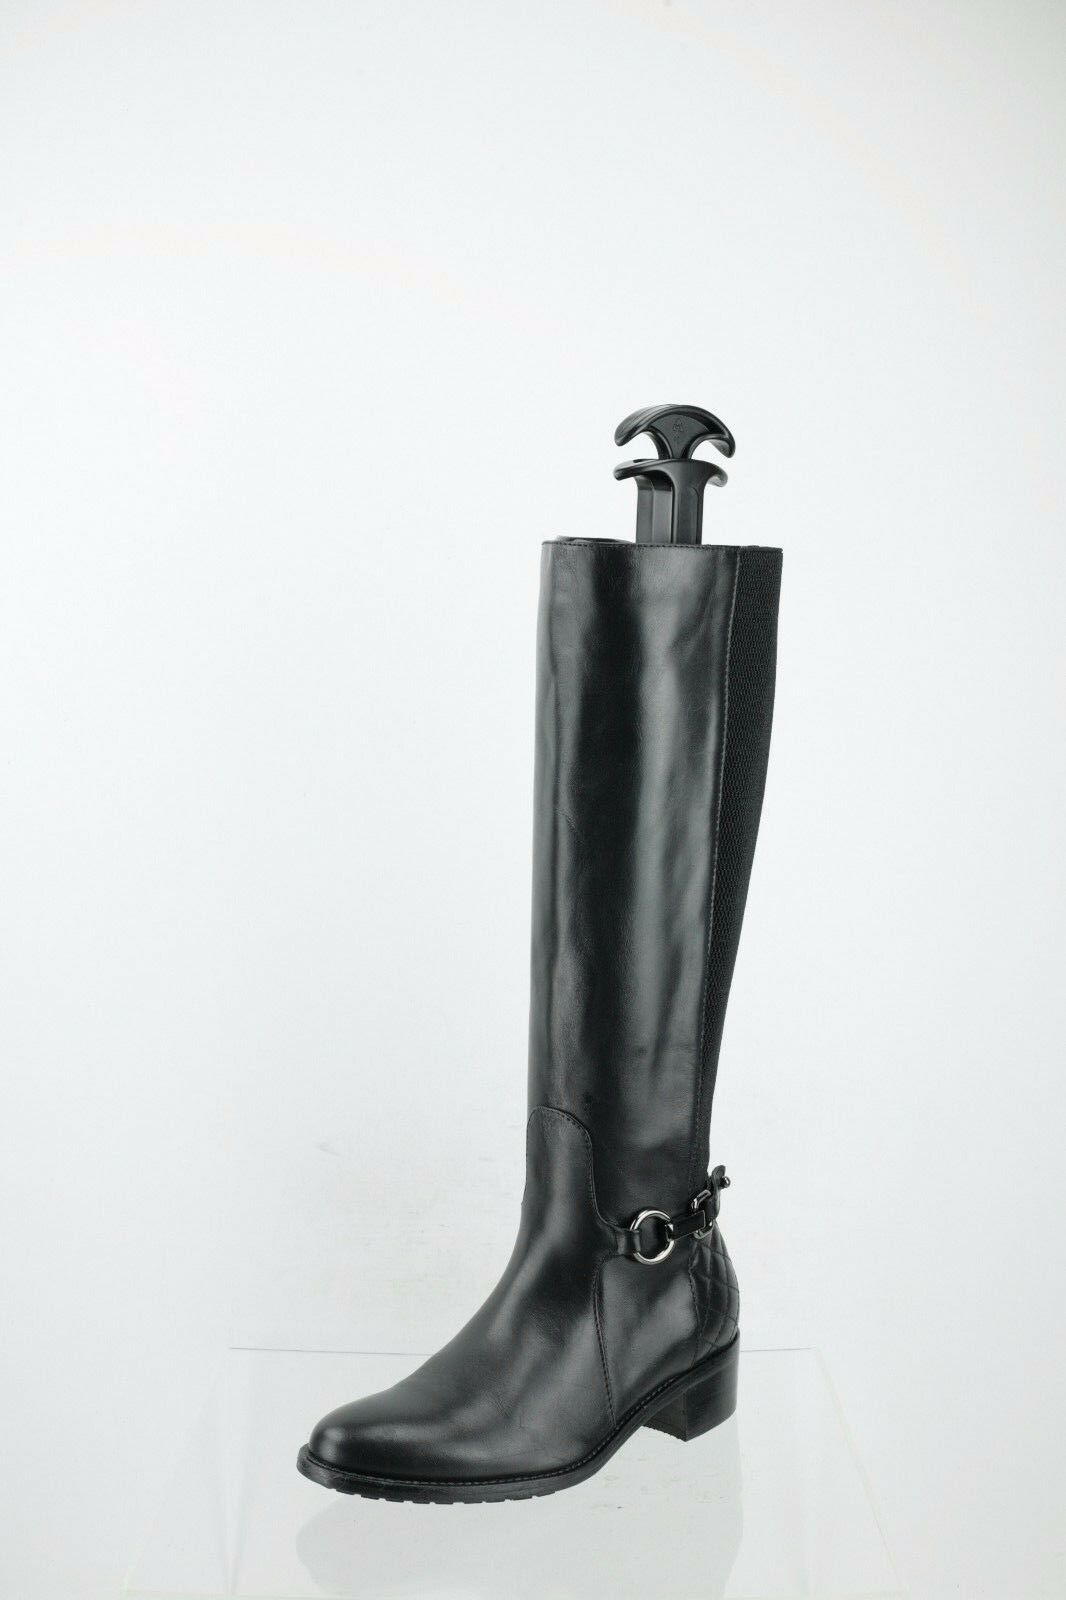 Aquatalia by Marvin K. Black Leather/Elastic Boots Women's Shoes Size 4 M NEW